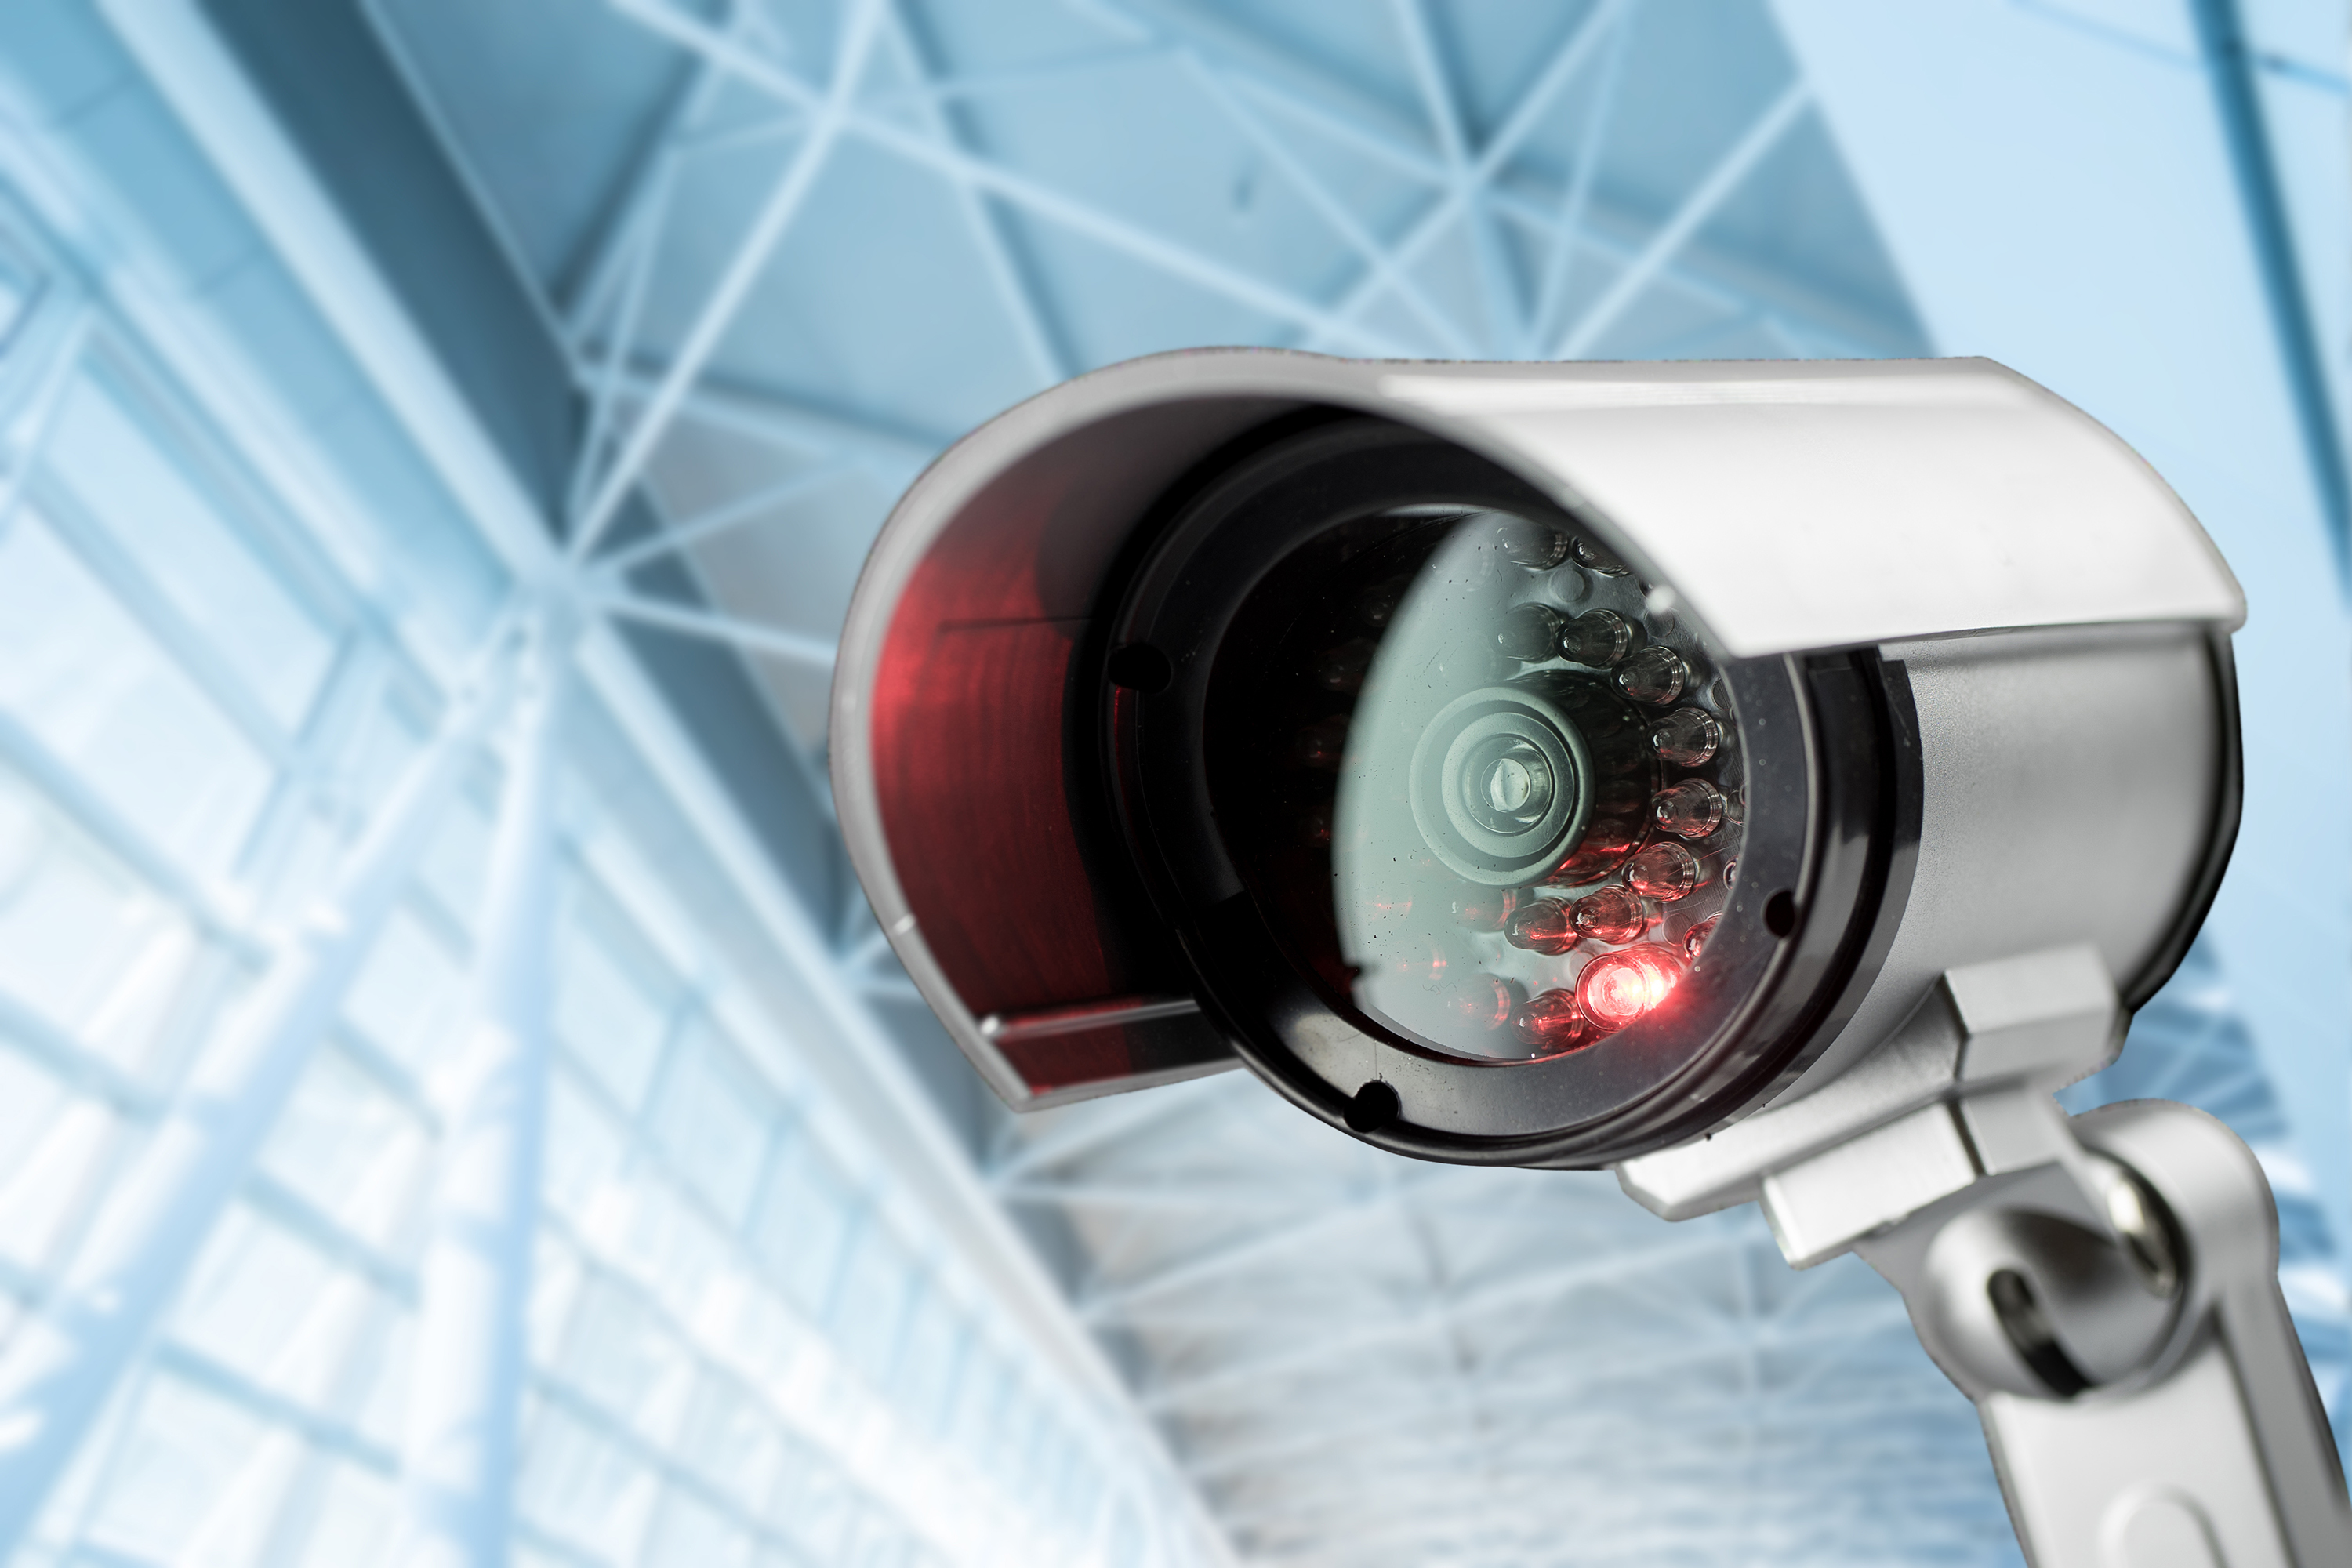 CCTV features